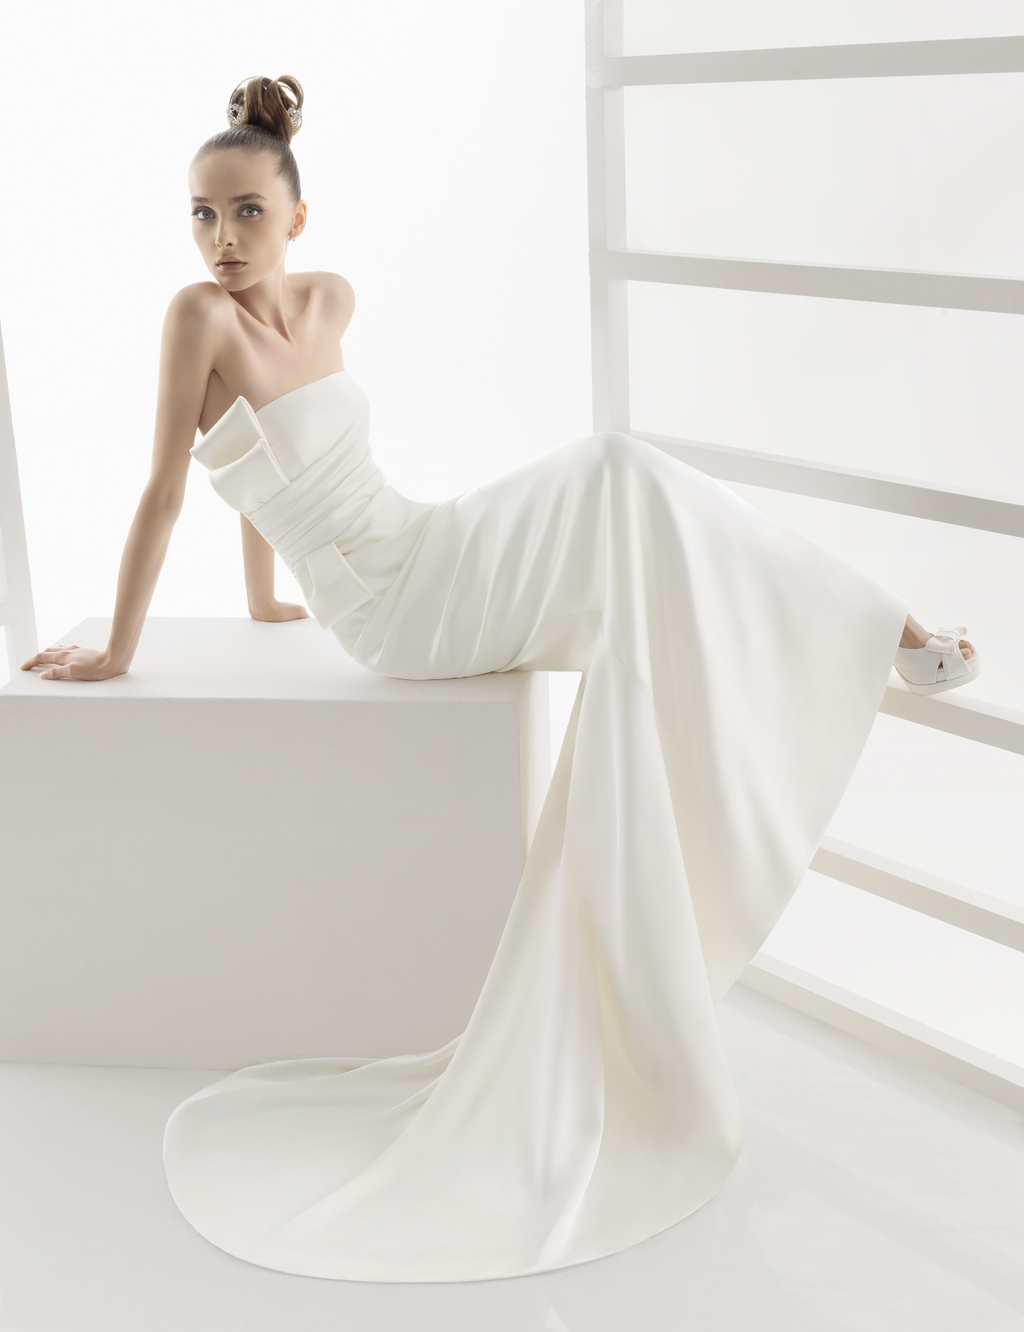 119-elana-rosa-clara-wedding-dress-sleek-white-strapless-side-2.full